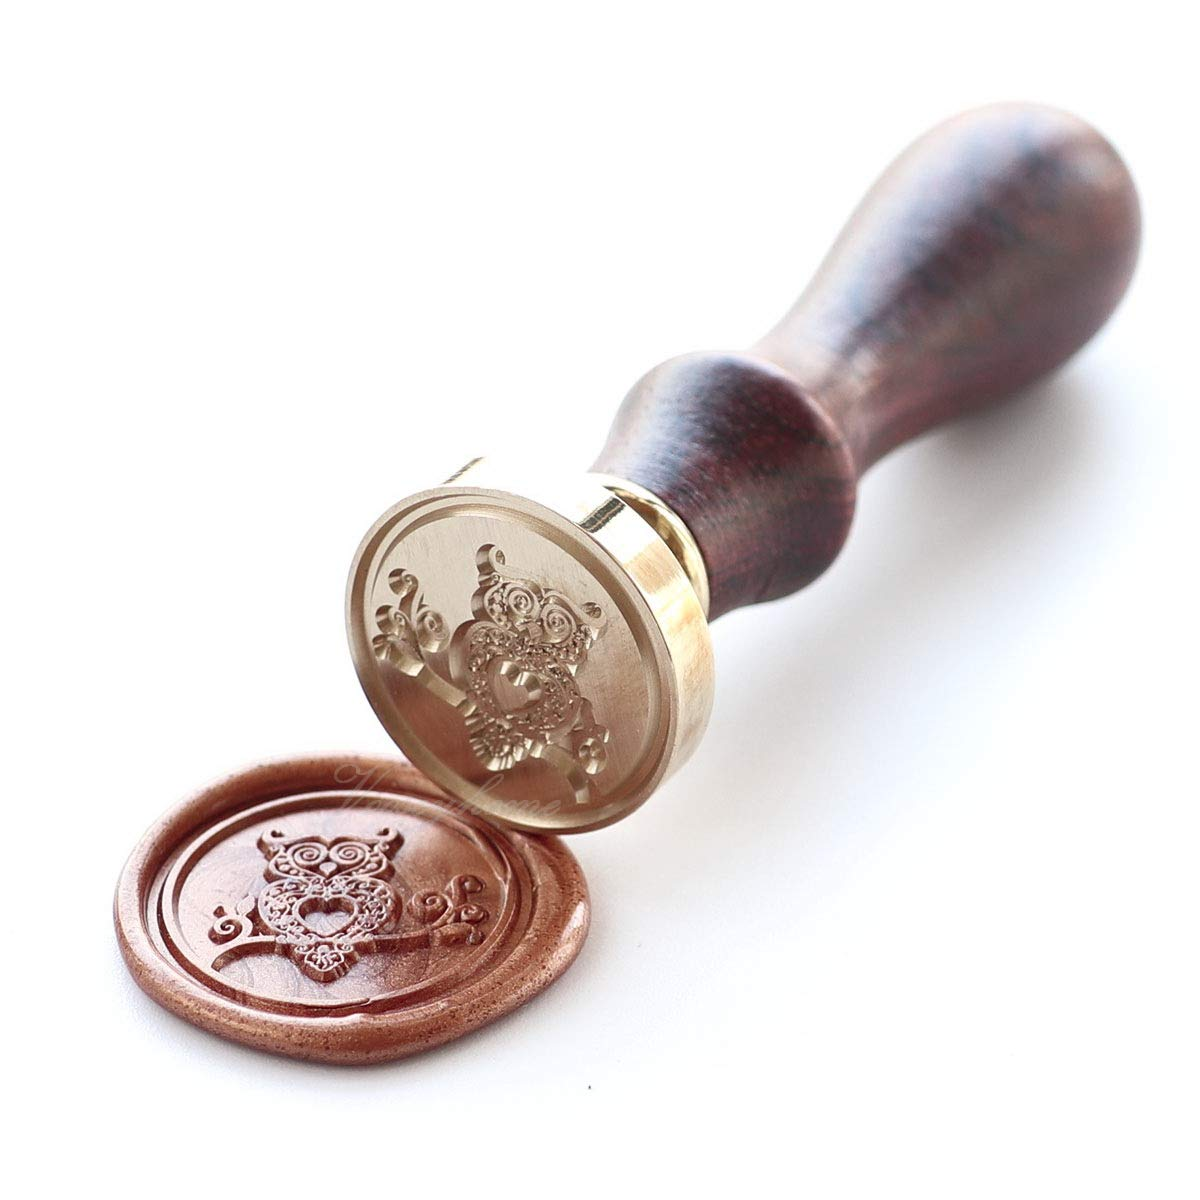 Vooseyhome The Cute Owl Wax Seal Stamp with Rosewood Handle - Ideal for Decorating Gift Packing, Envelopes, Parcels, Cards, Letters, Invitations, Signature and Everything You Like! by VOOSEYHOME (Image #3)